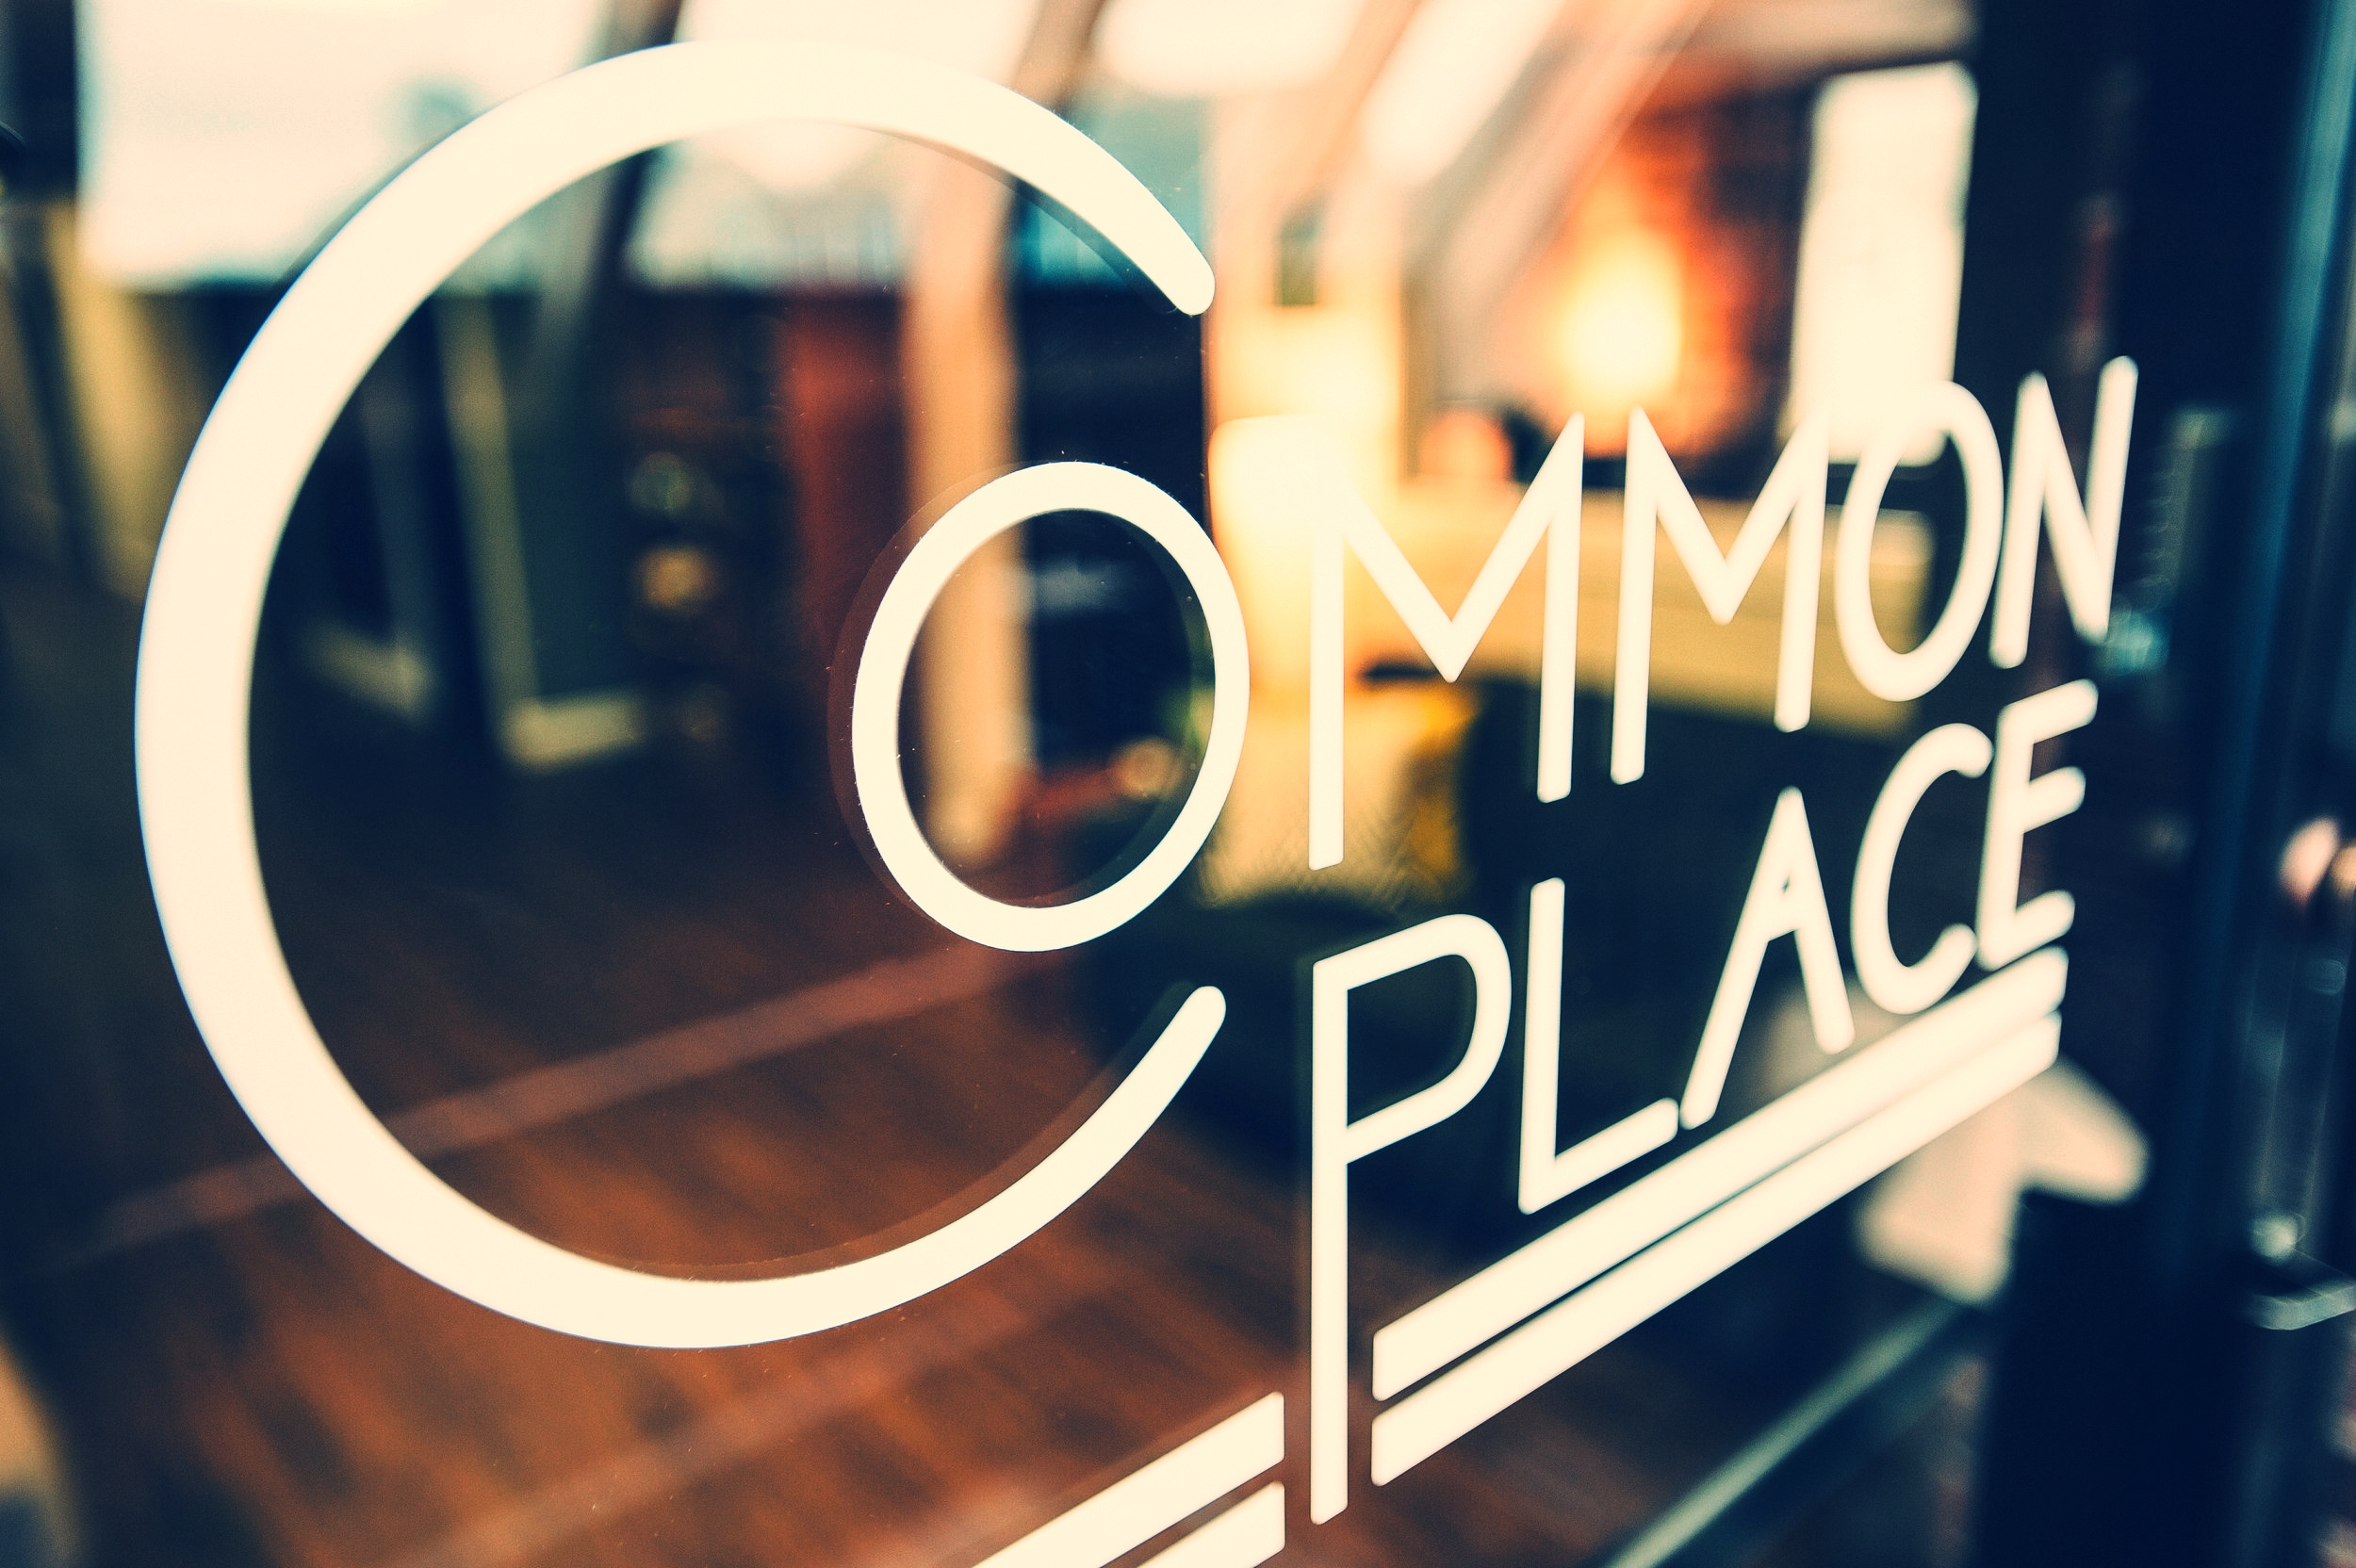 CommonPLace-3.jpg